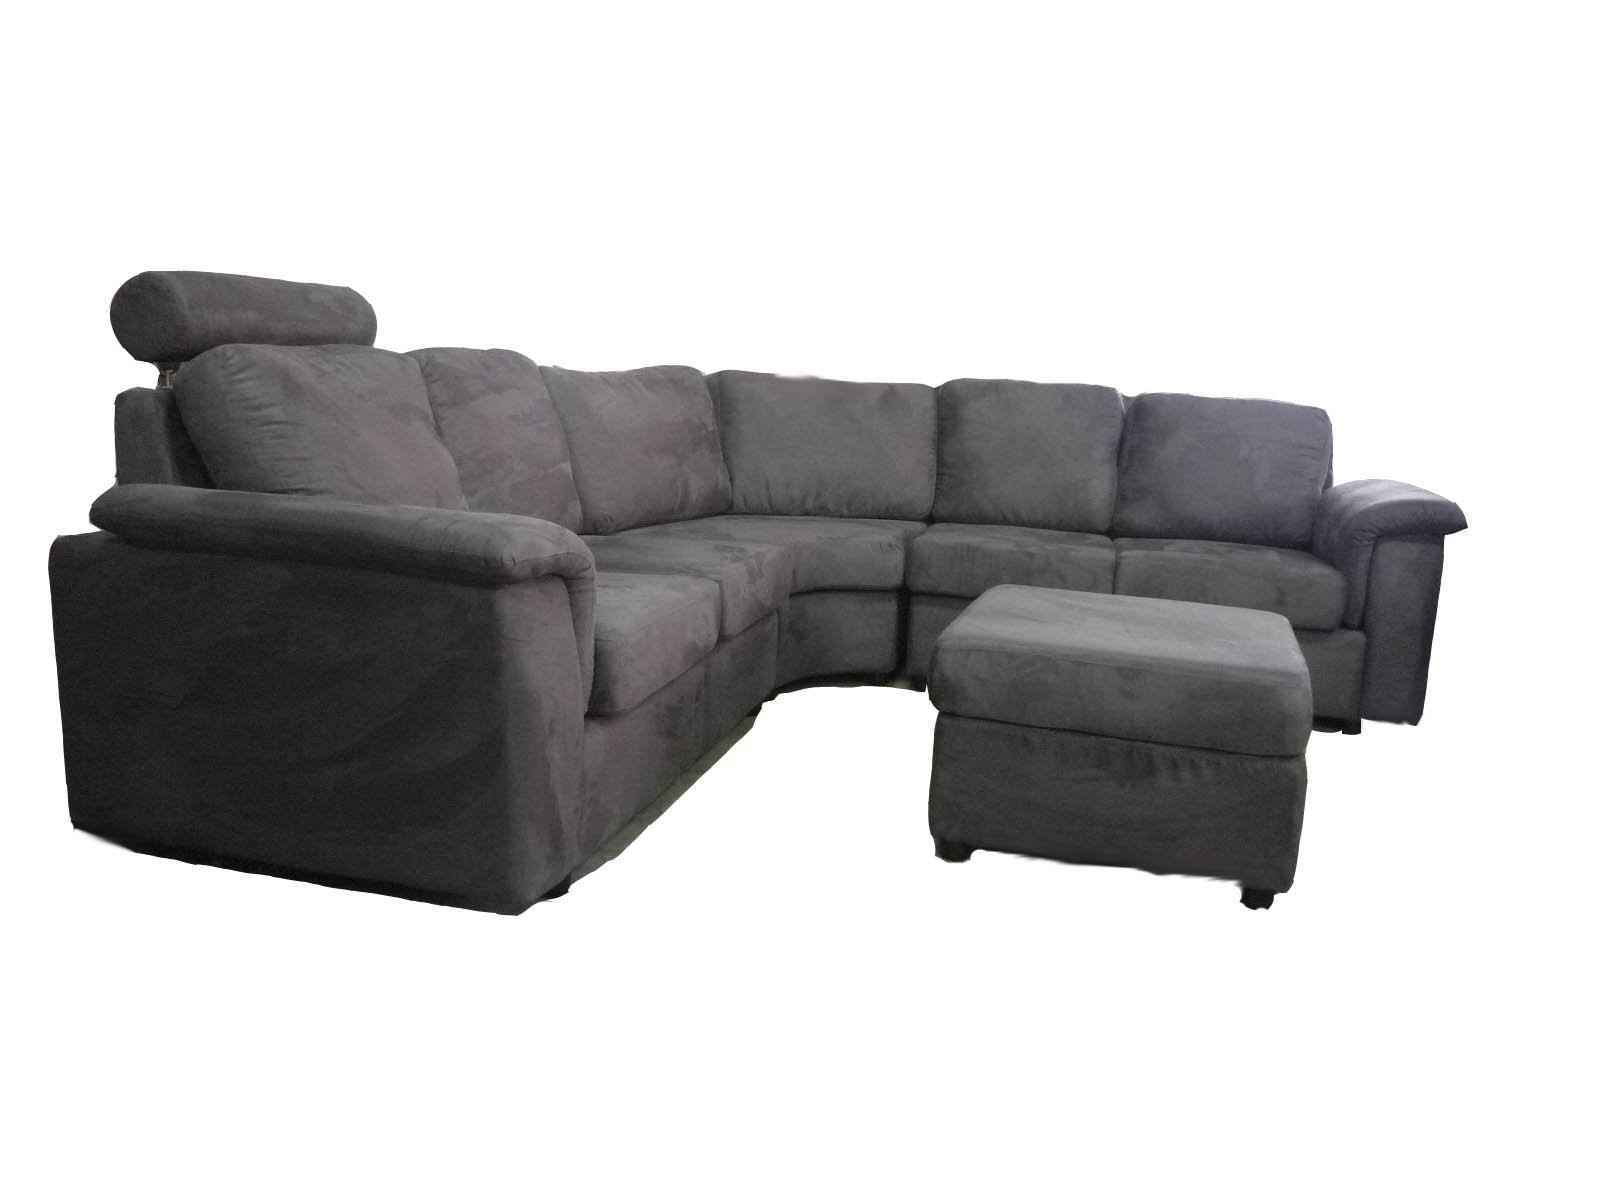 Sears Recliners | Rocker Recliner Sale | Sears Recliners